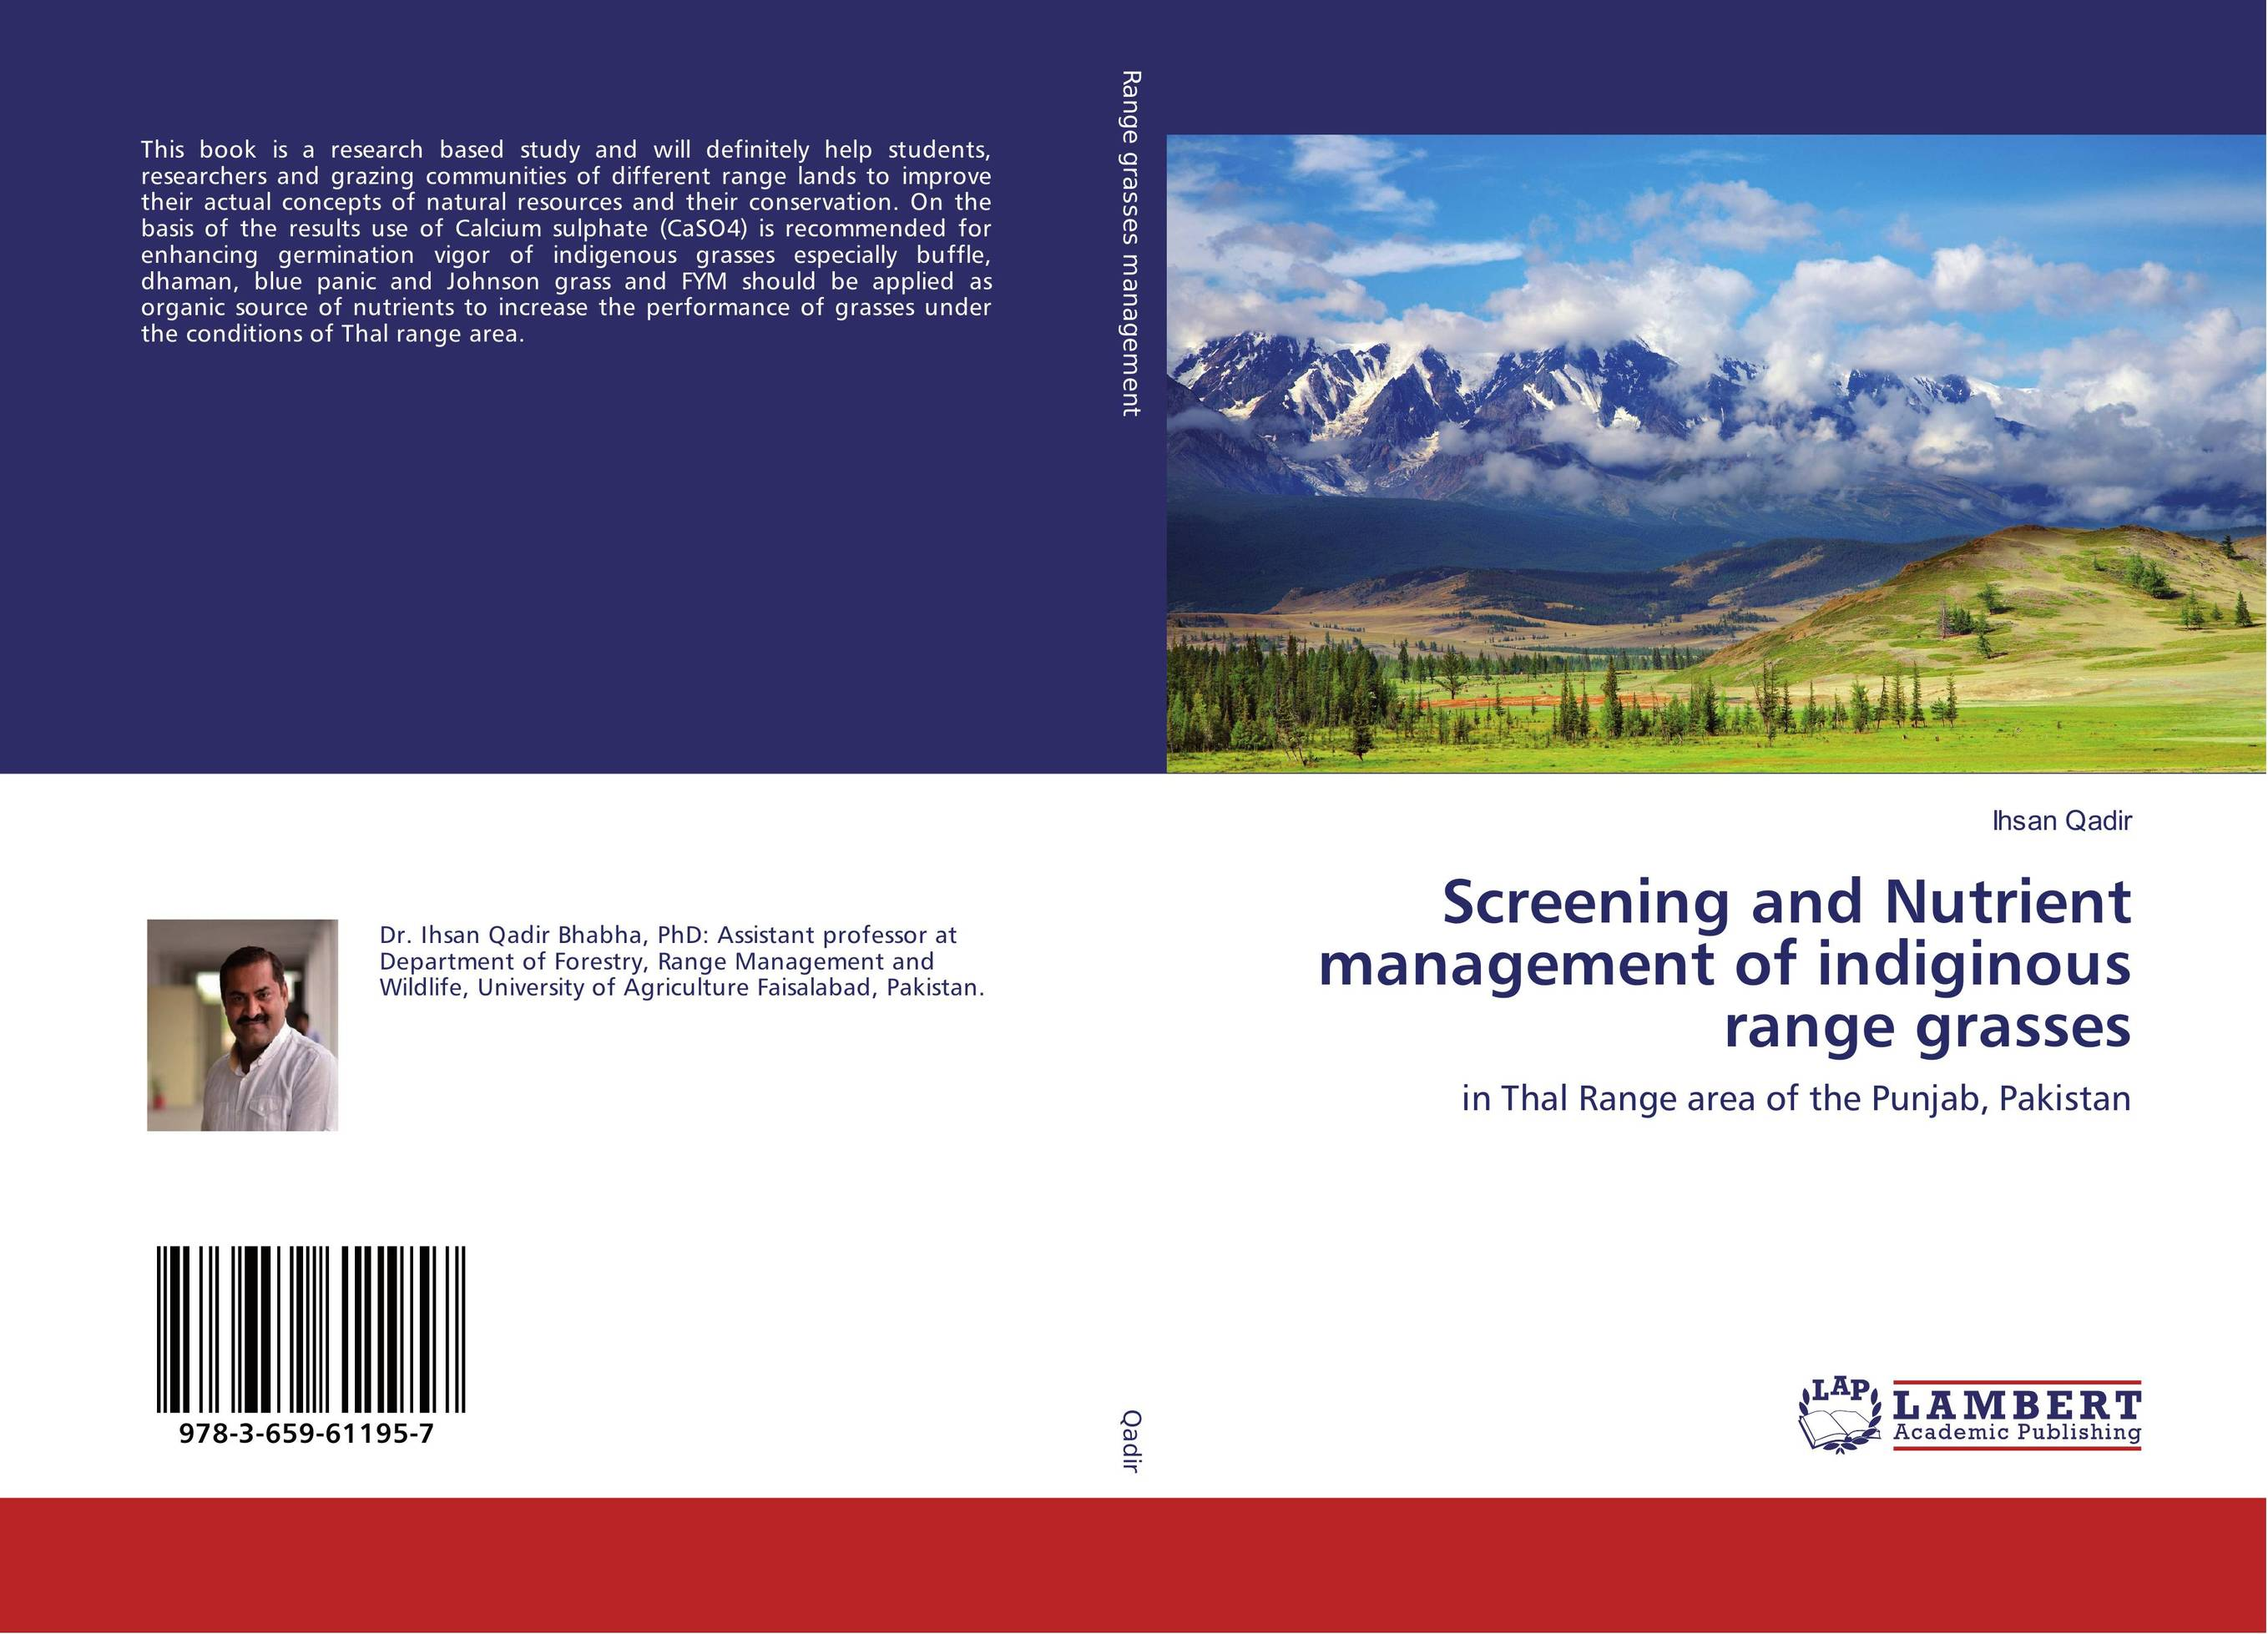 Screening and Nutrient management of indiginous range grasses prostate screening motivating factors and barriers